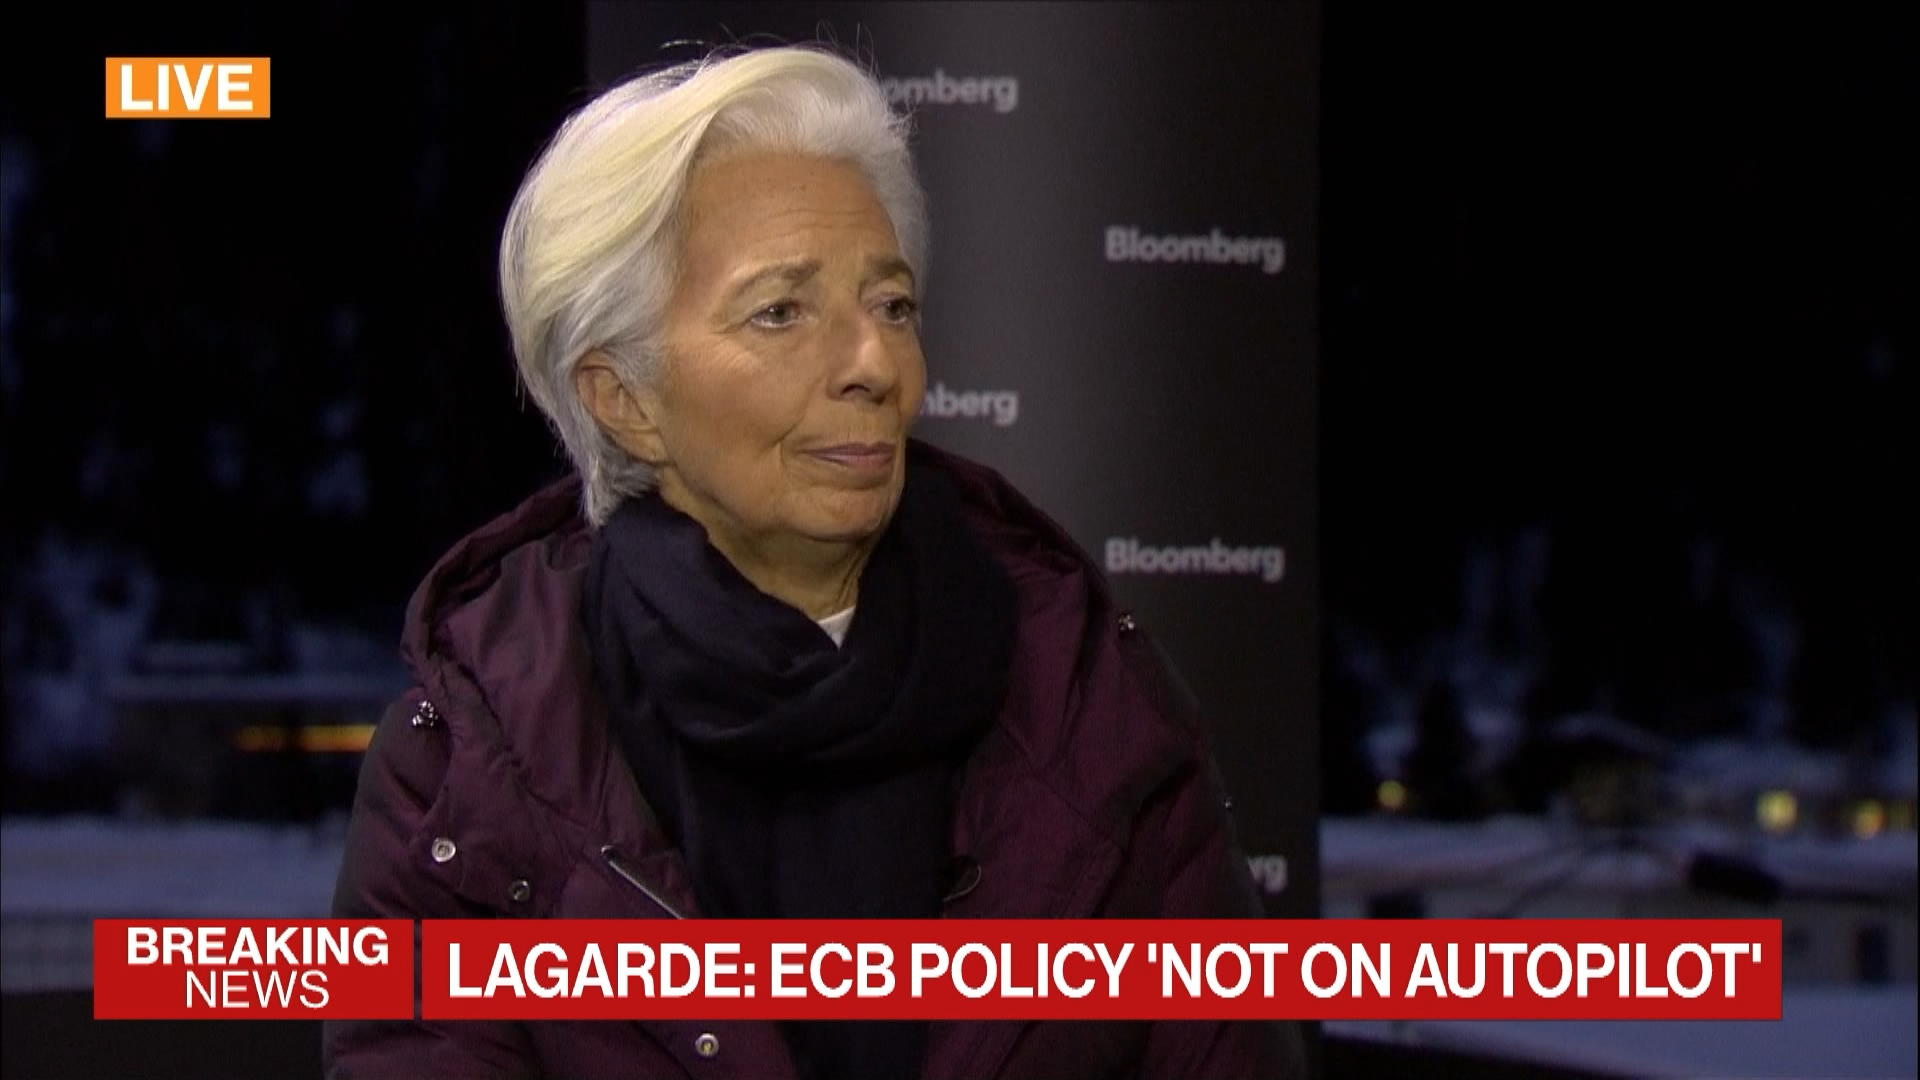 Davos: ECB President Christine Lagarde on Strategic Review, Climate Change, Policy Tools